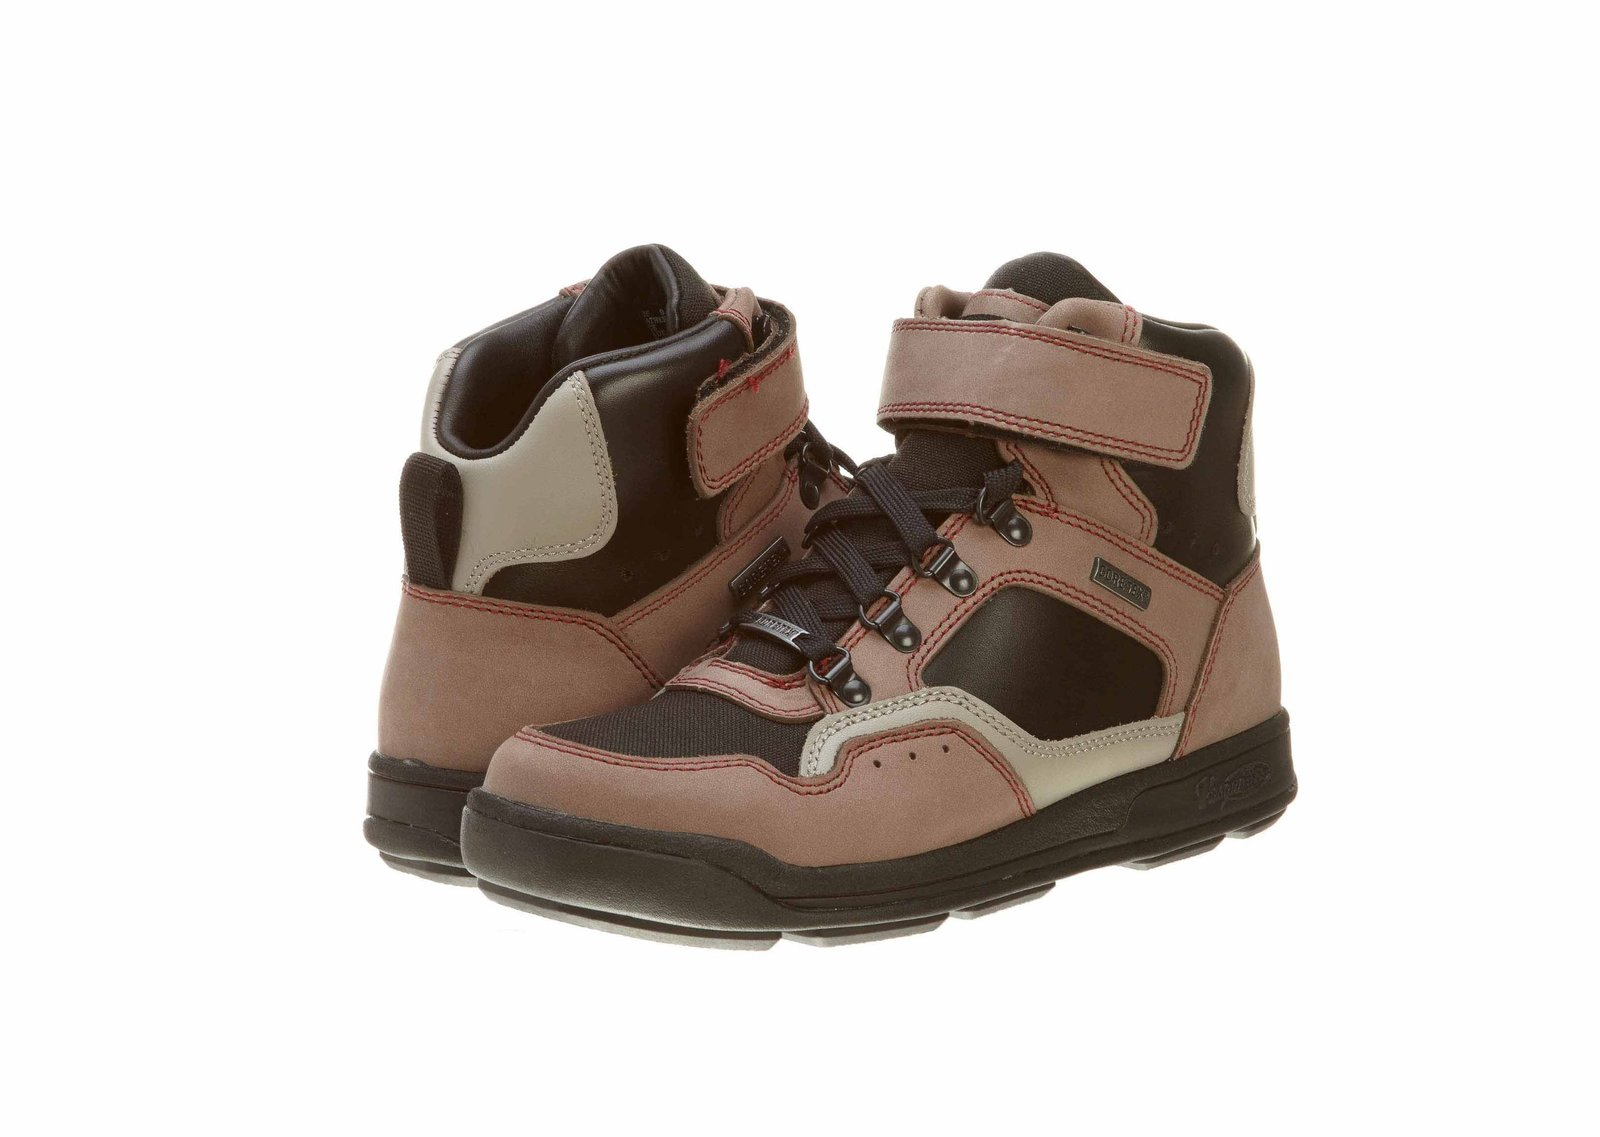 Vasque Retro Boots Vasque Mens Sg Strap Boots Style And 50 Similar Items